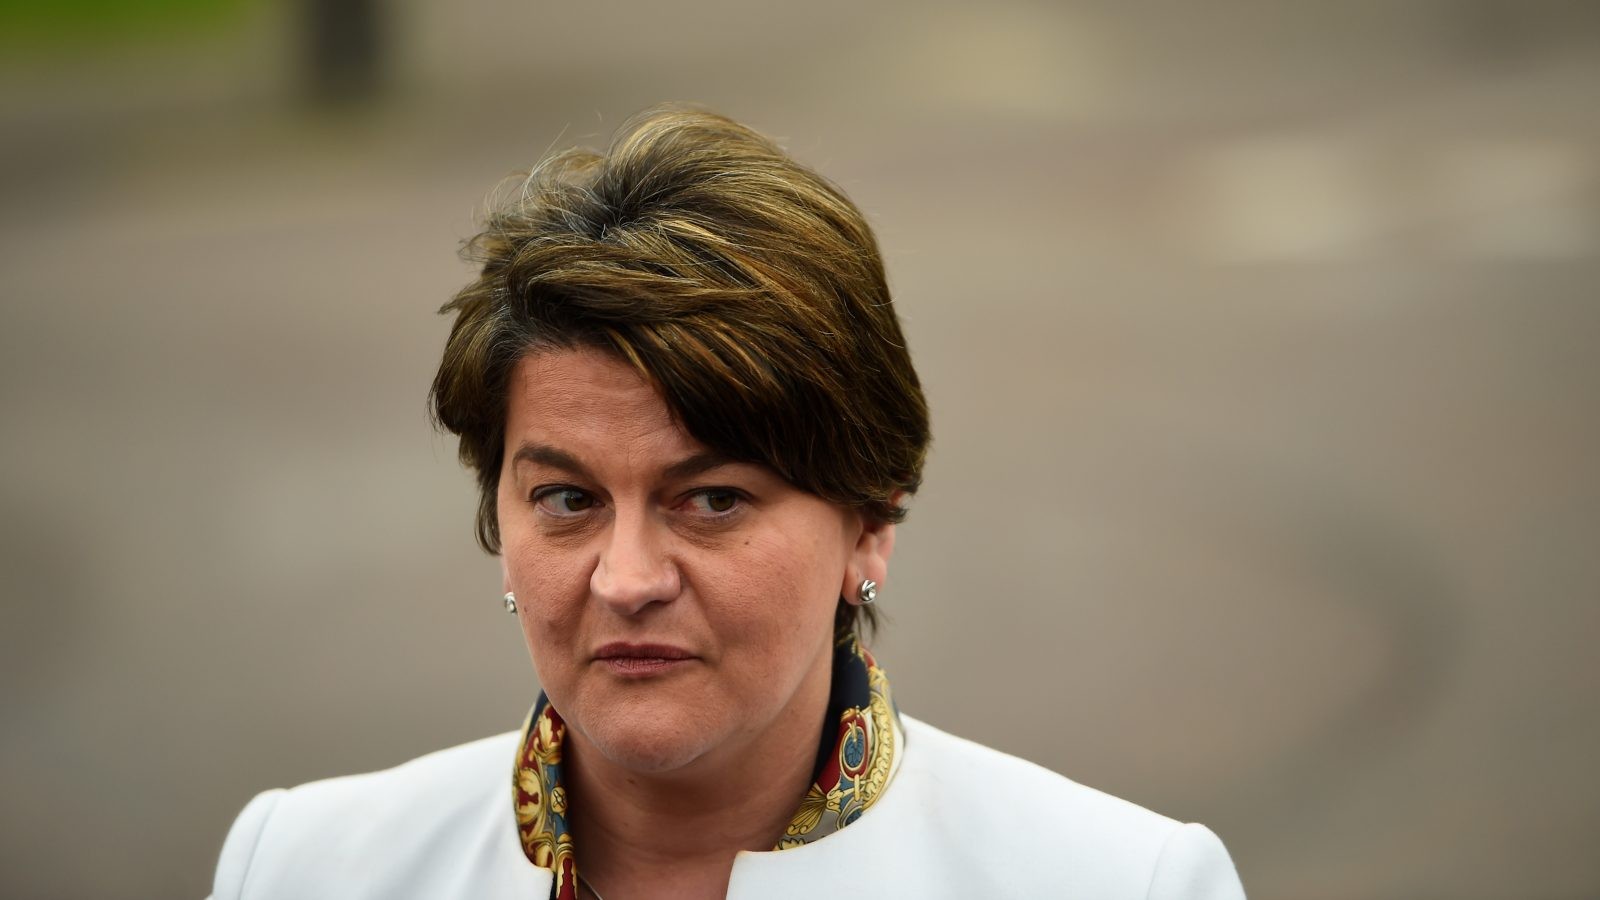 Leader of the Democratic Unionist Party (DUP) Arlene Foster speaks to media outside Stormont Parliament buildings in Belfast, Northern Ireland March 6, 2017. REUTERS/Clodagh Kilcoyne - RTS11O67